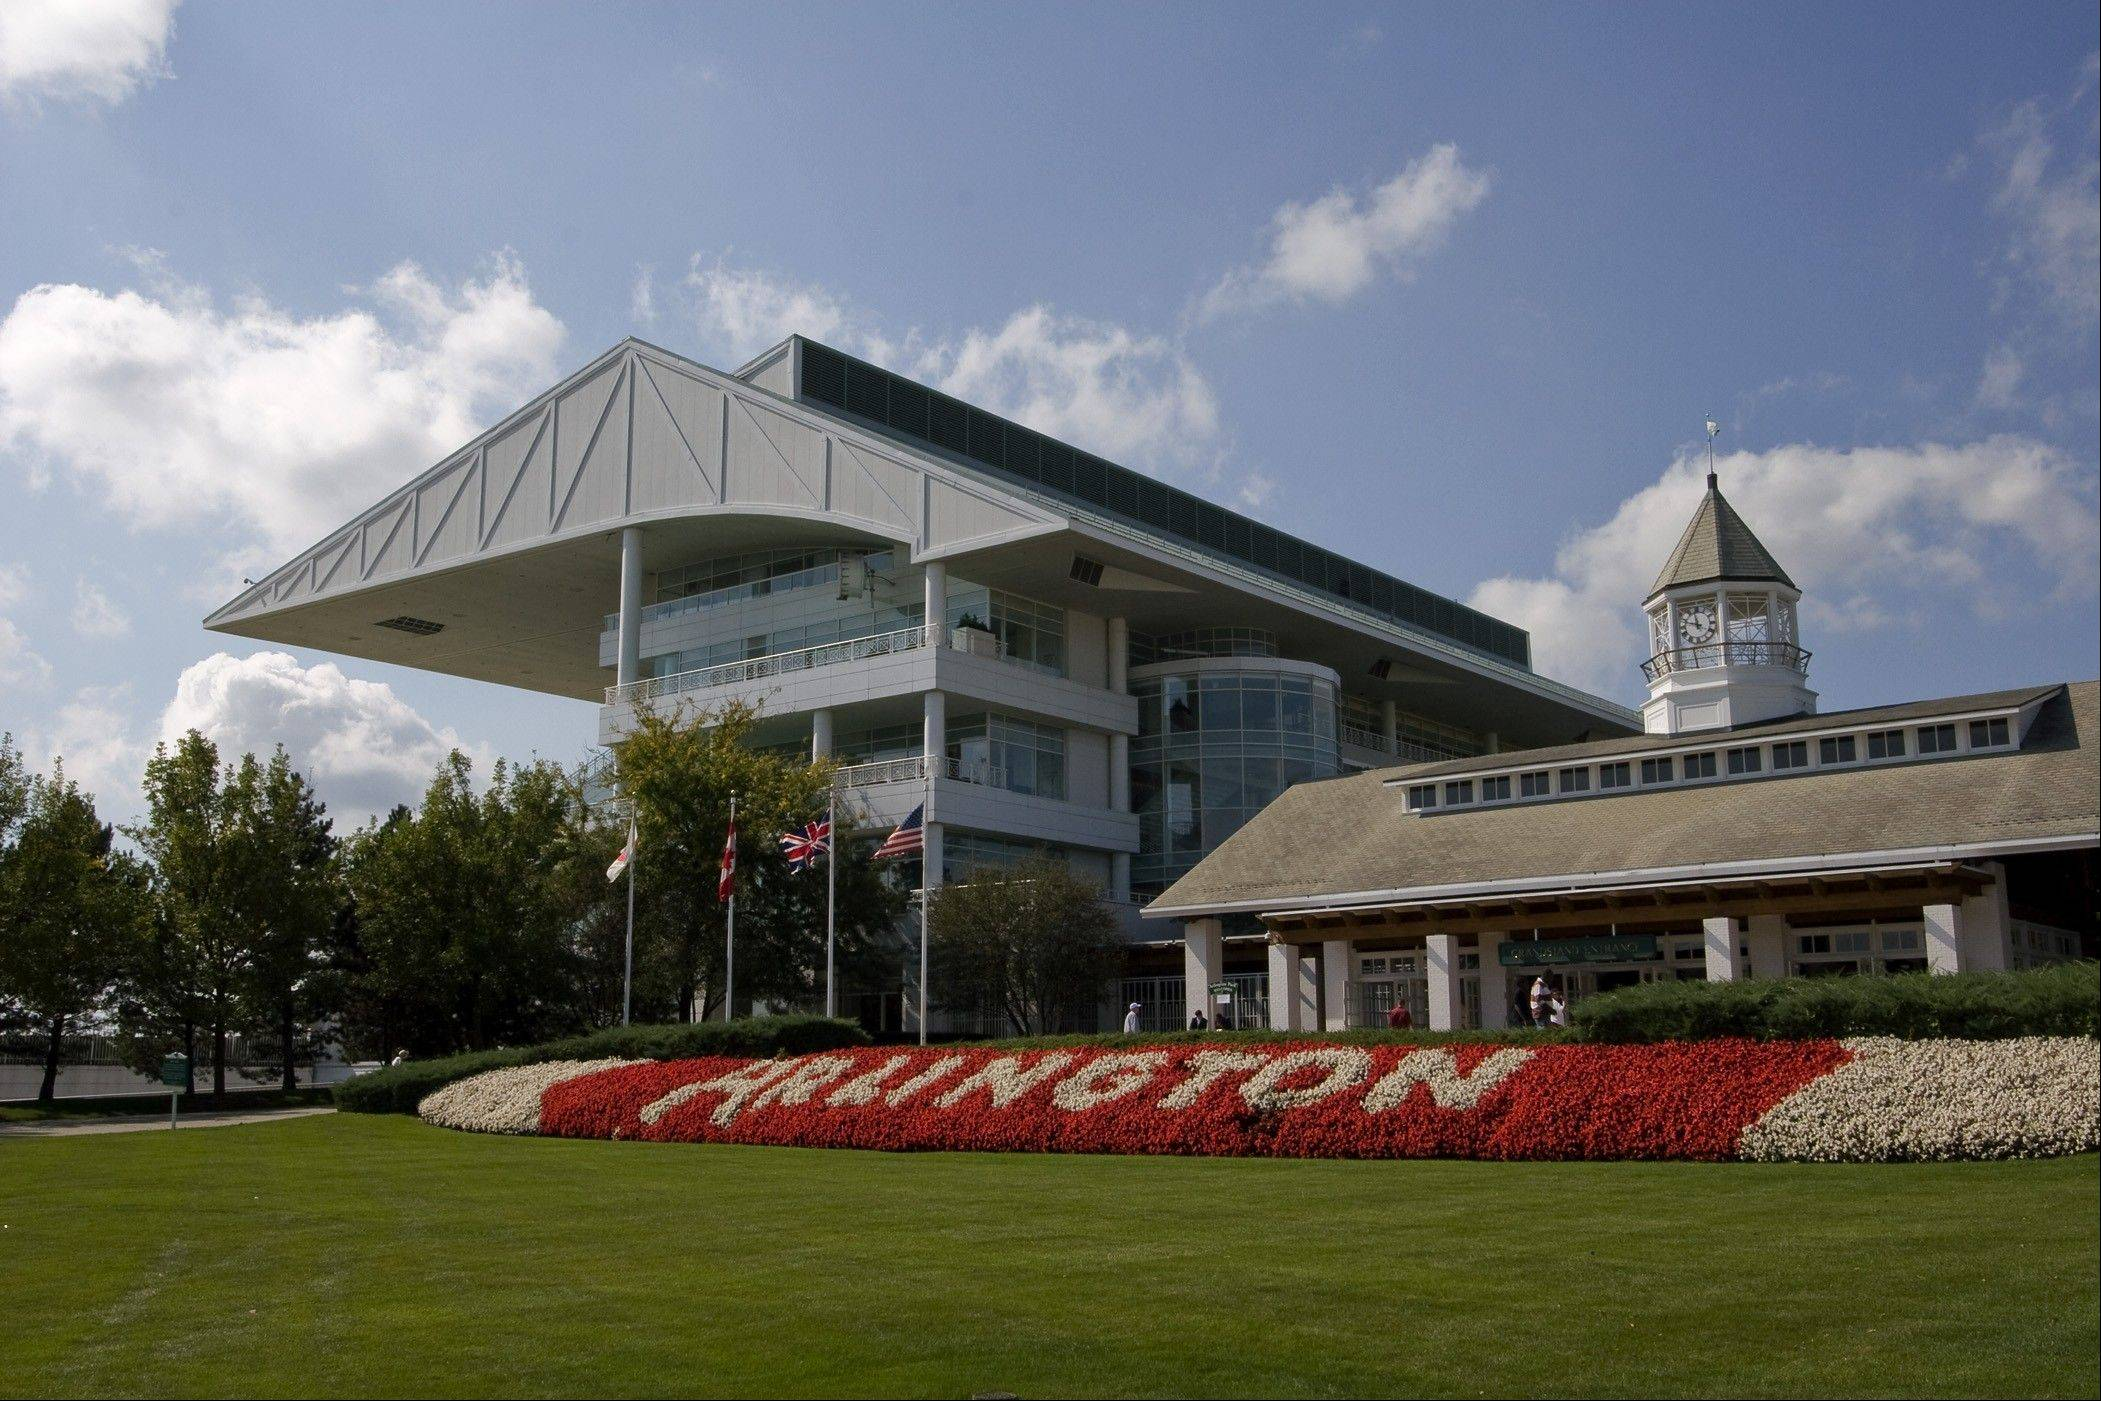 Gov. Pat Quinn's veto of a gambling bill stymied Arlington Park racetrack again in its attempt to gain approval for slot machines.